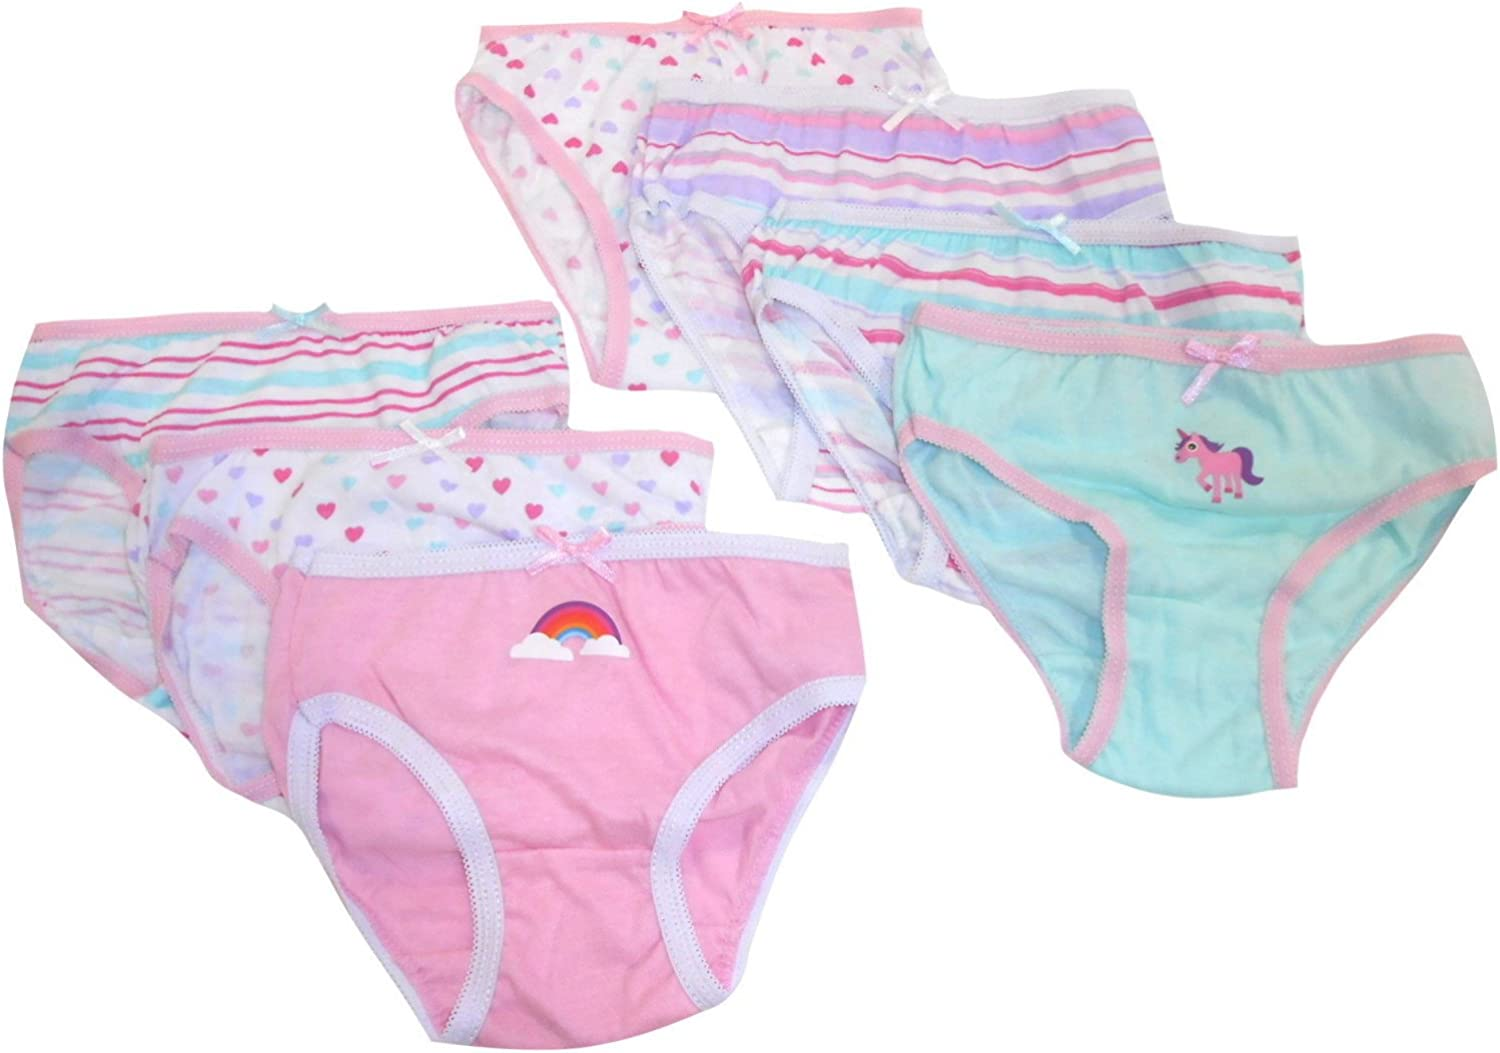 Thingimijigs Girls Patterned 7 Pack Cotton Knickers Briefs